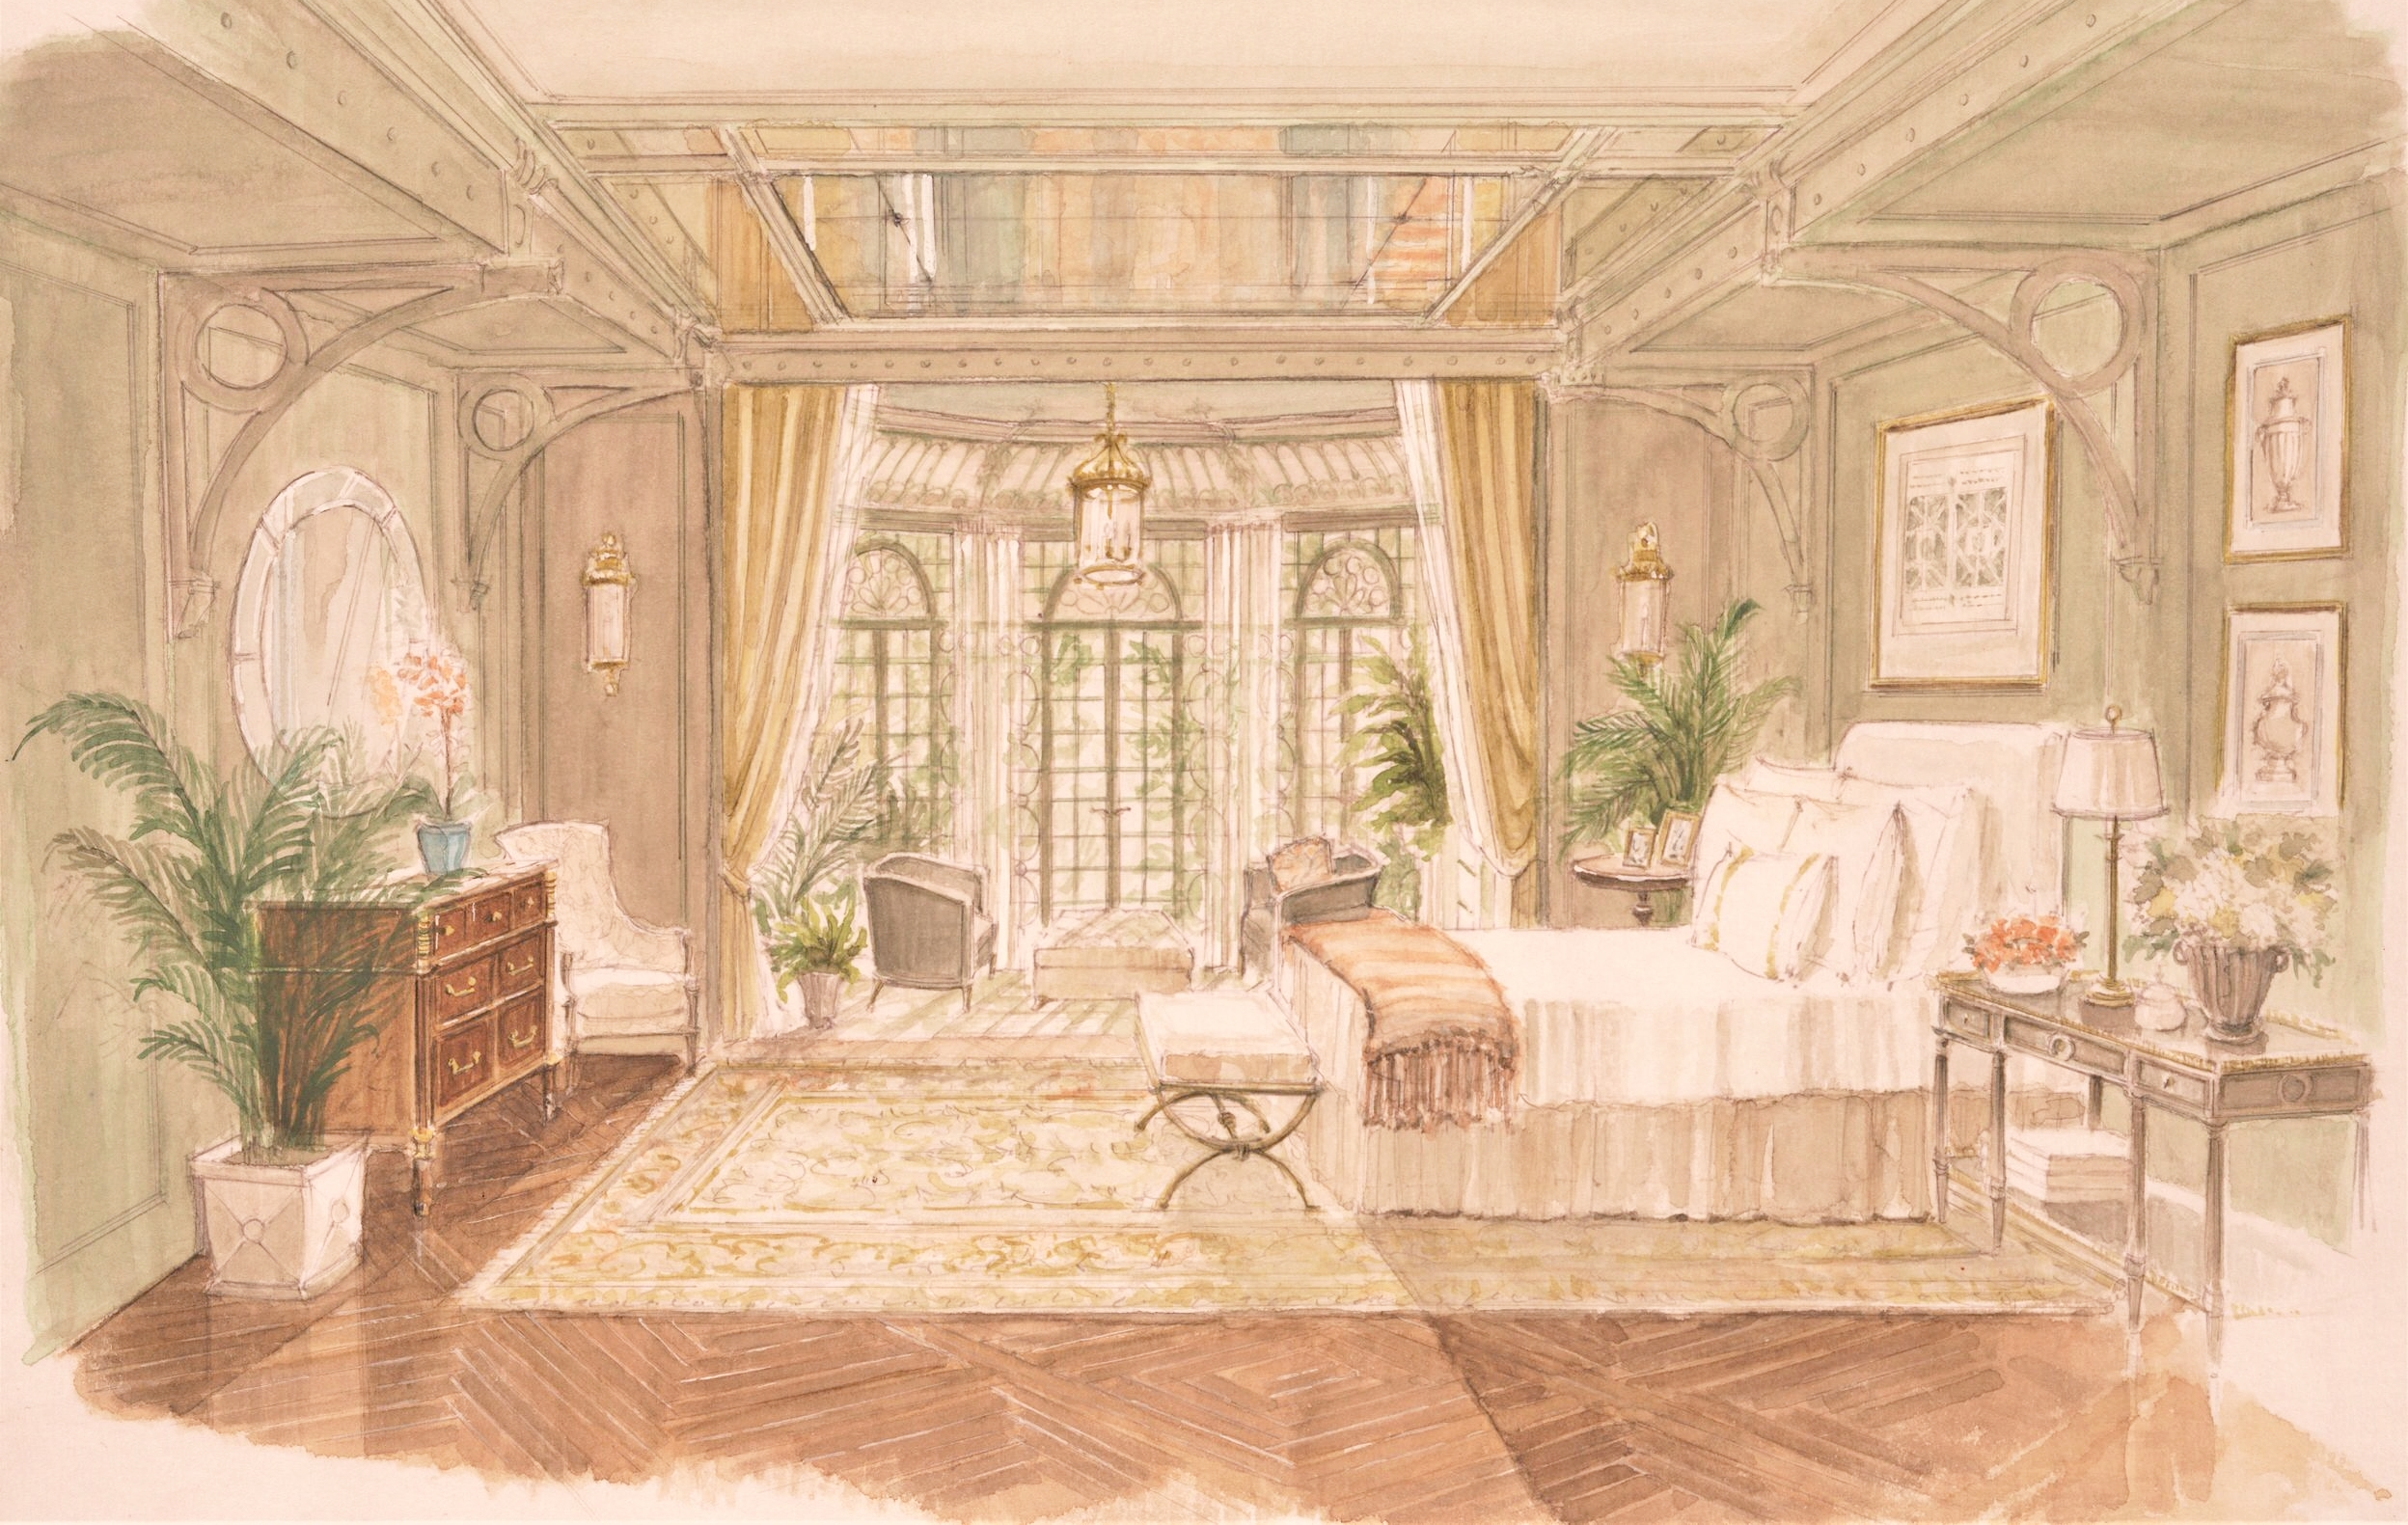 The conservatory greenhouse of a Back Bay mansion re-envisioned as a bedroom with antique French garden plans, a soft, creamy oushak and lush sitting room